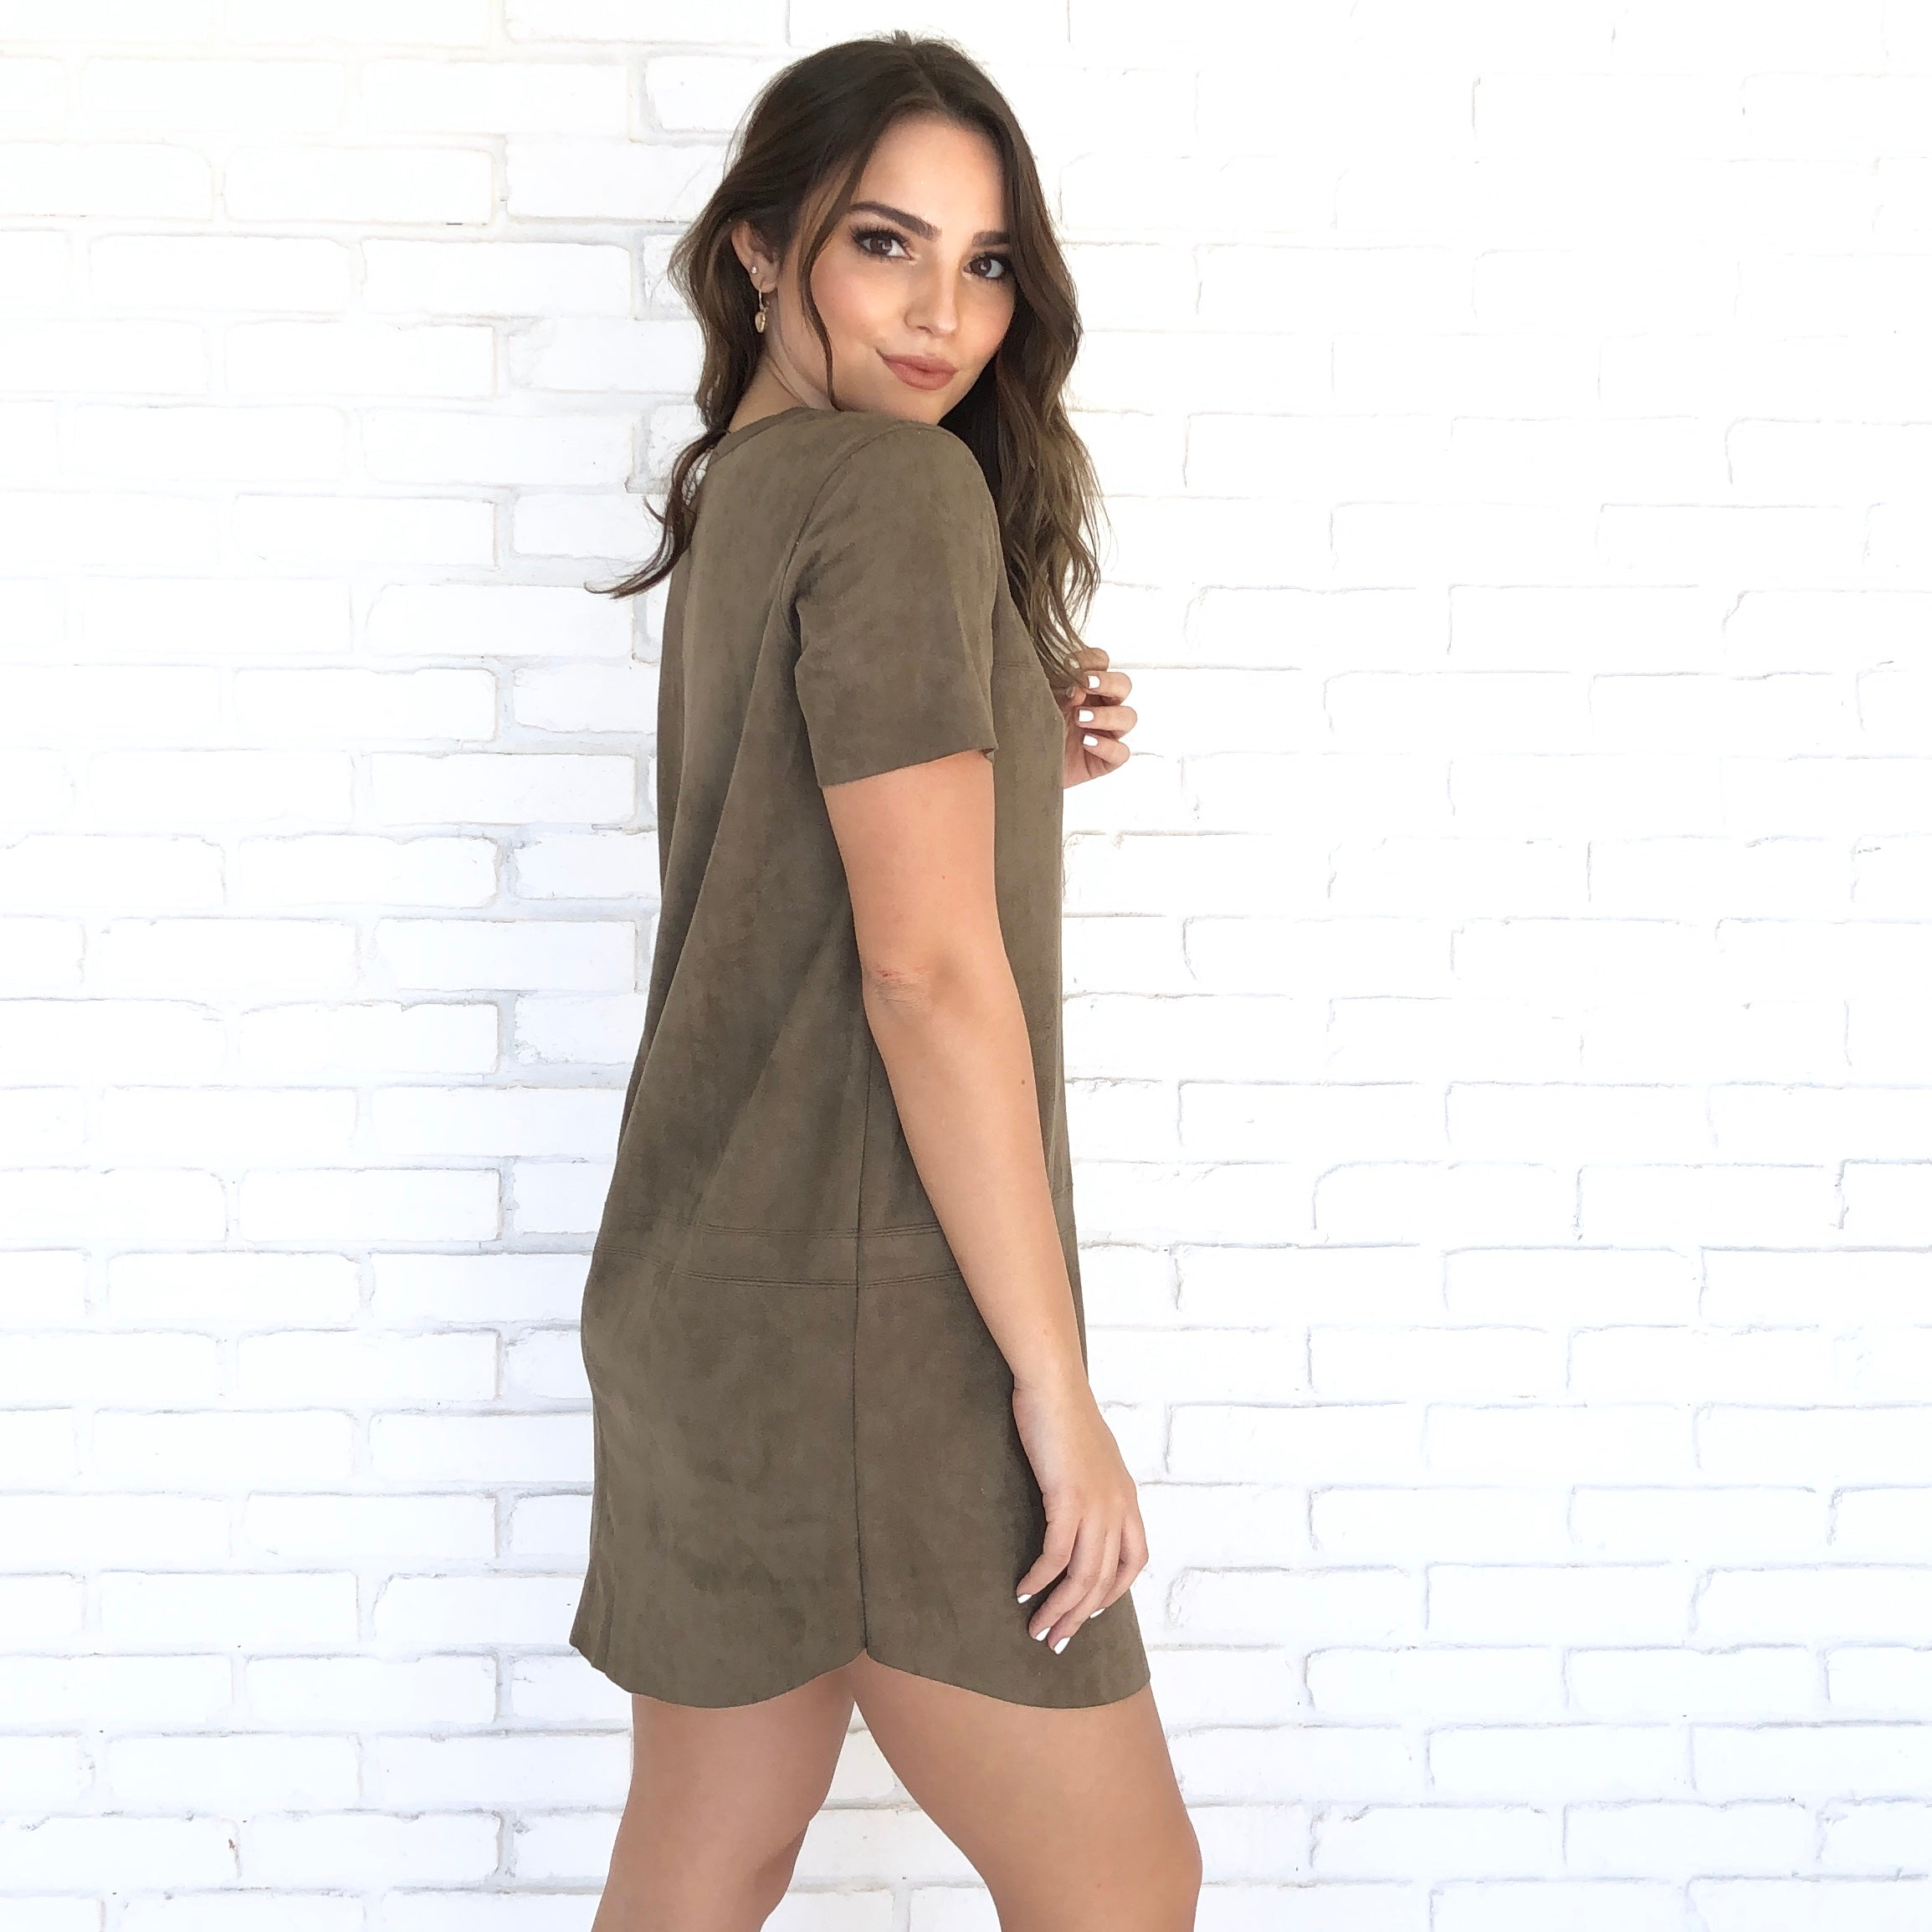 c51e8bdf884 City Streets Suede Shift Dress in Olive - Dainty Hooligan Boutique